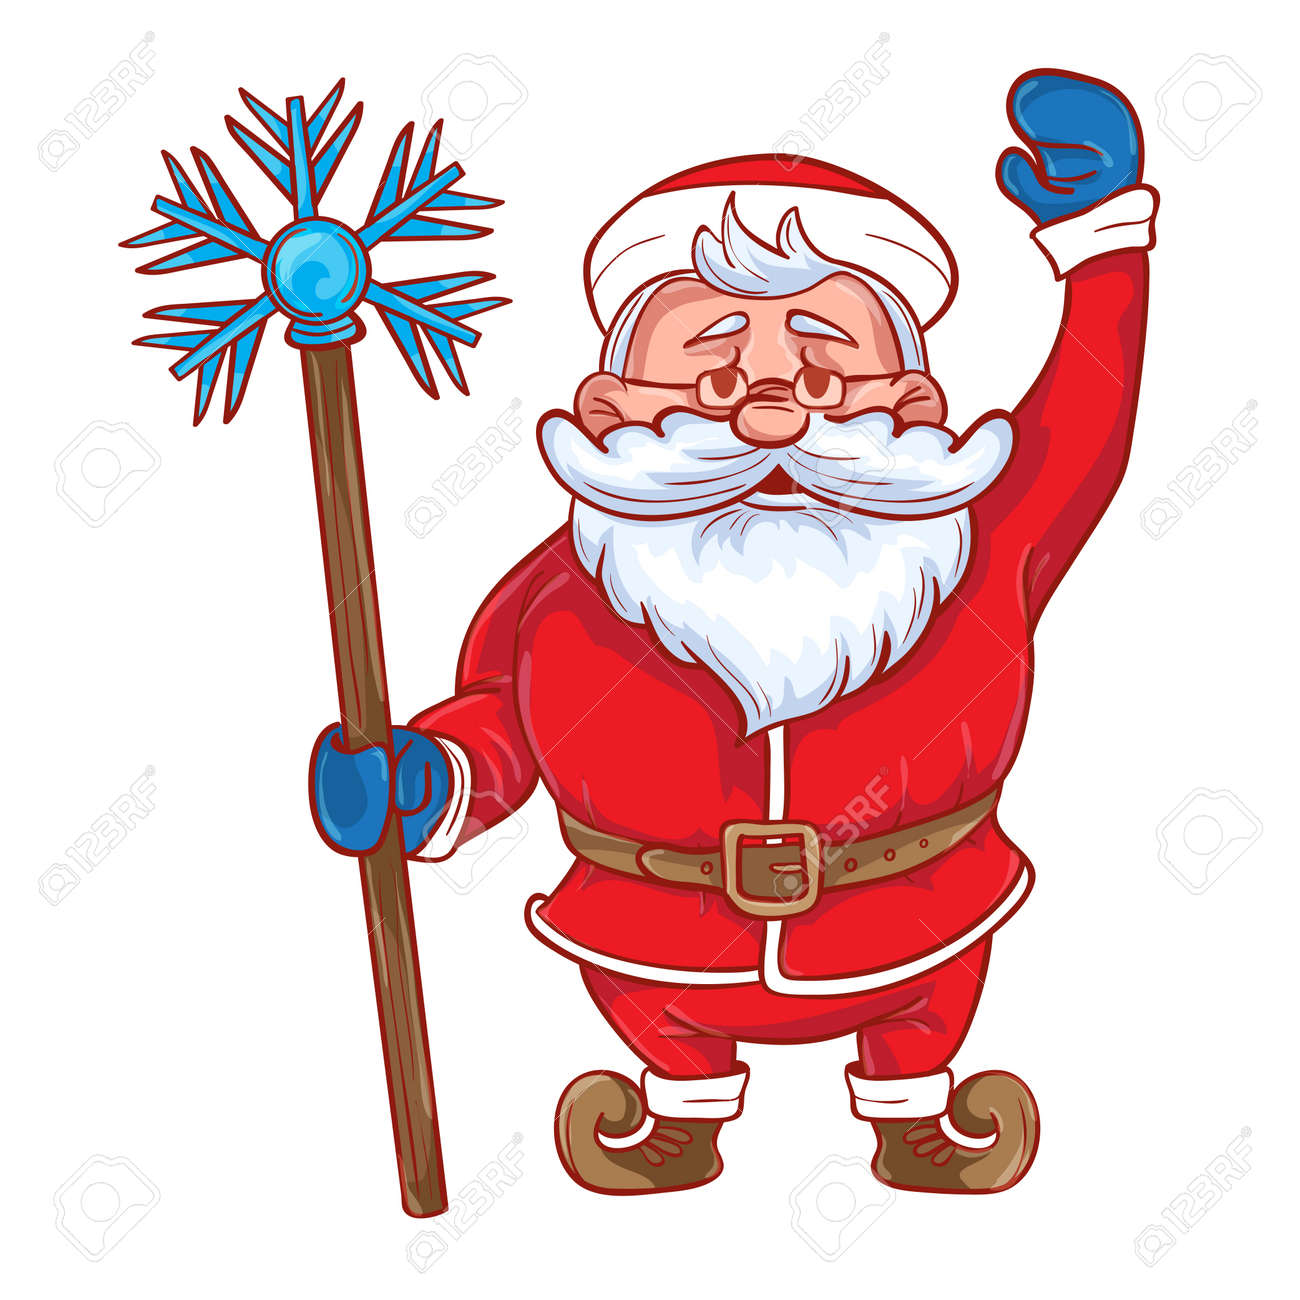 funny cartoon santa claus with a magic stick in his hand colored santa claus on